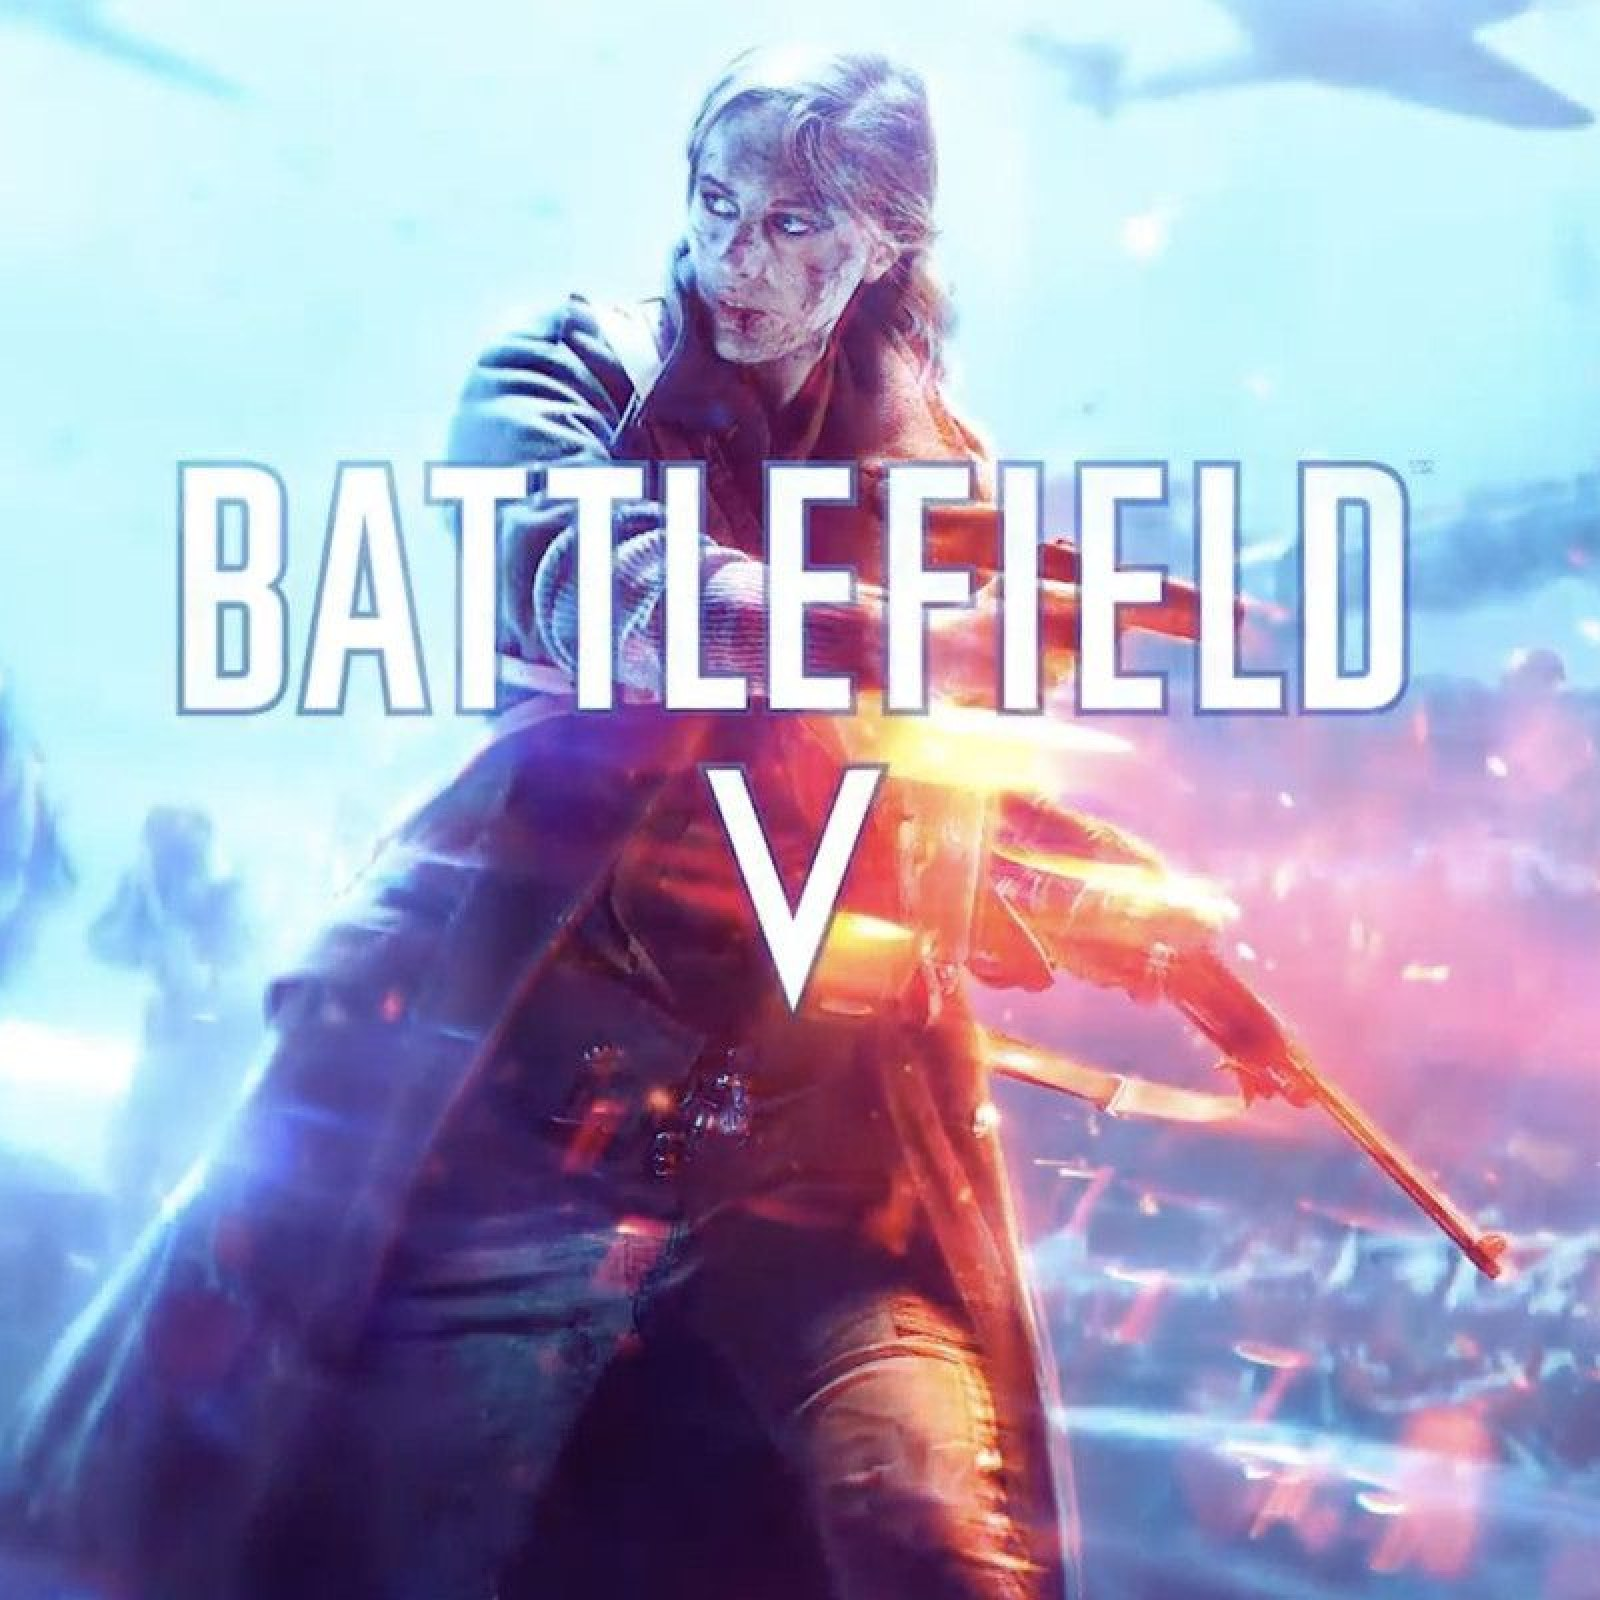 Is 'Battlefield V' Down? Server Status and Updates